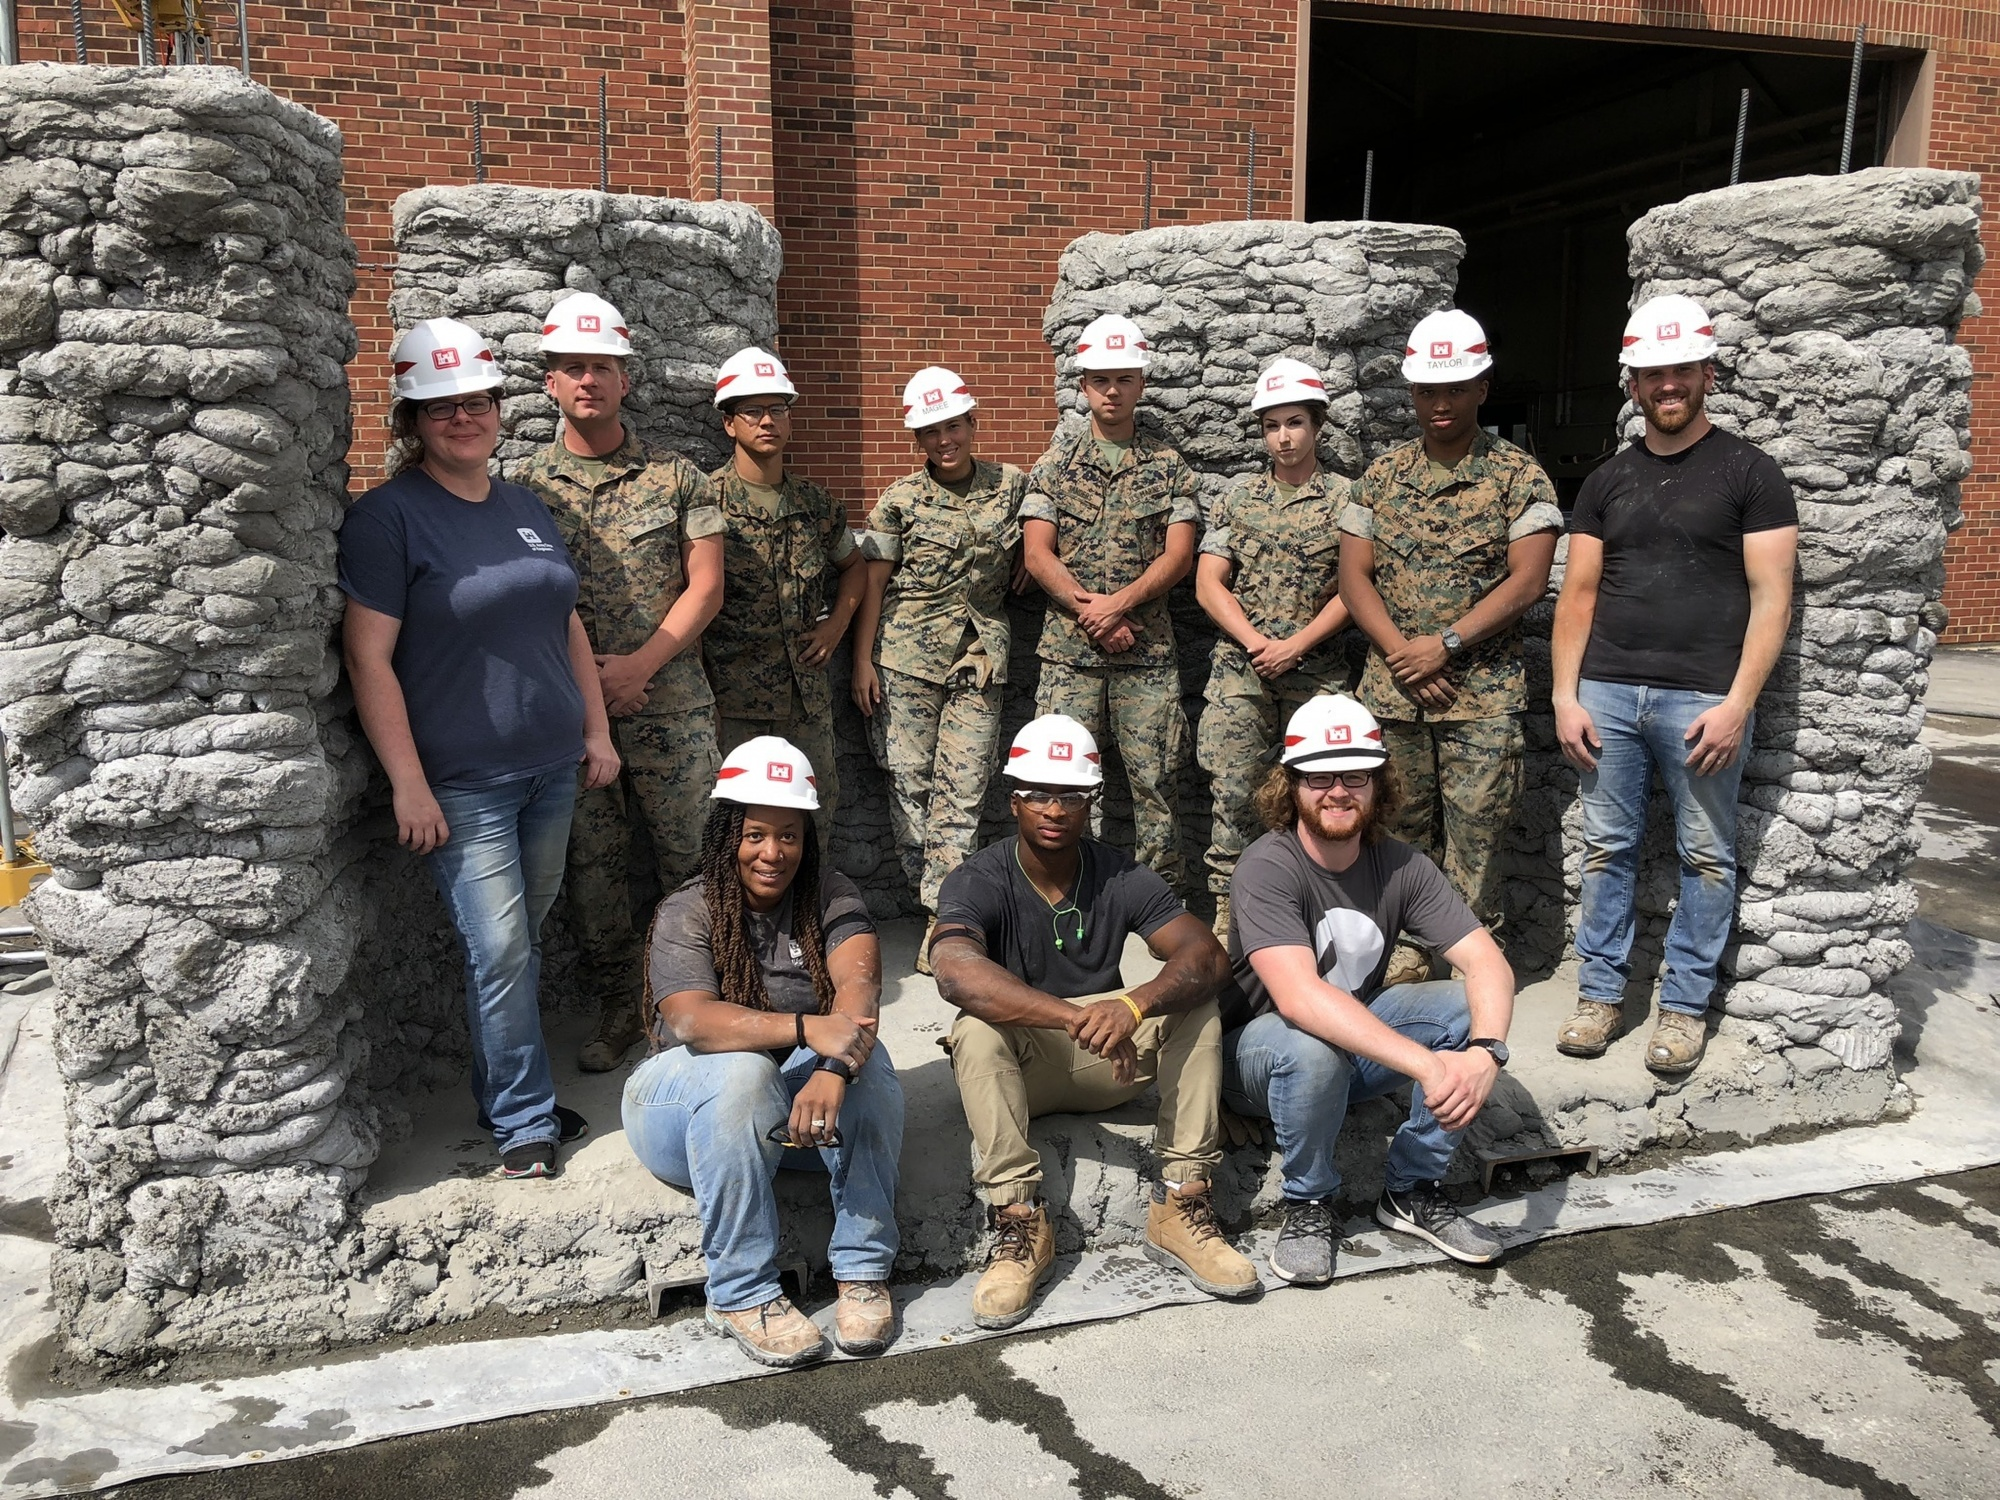 Marines from 7th Engineer Support Battalion along with engineers from the U.S. Army Corps of Engineers Construction Engineering Research Laboratory pose with a concrete bunker during a 3D concrete printing exercise. Photo via U.S. Marines/Staff Sgt. Michael Smith, 7th ESB.